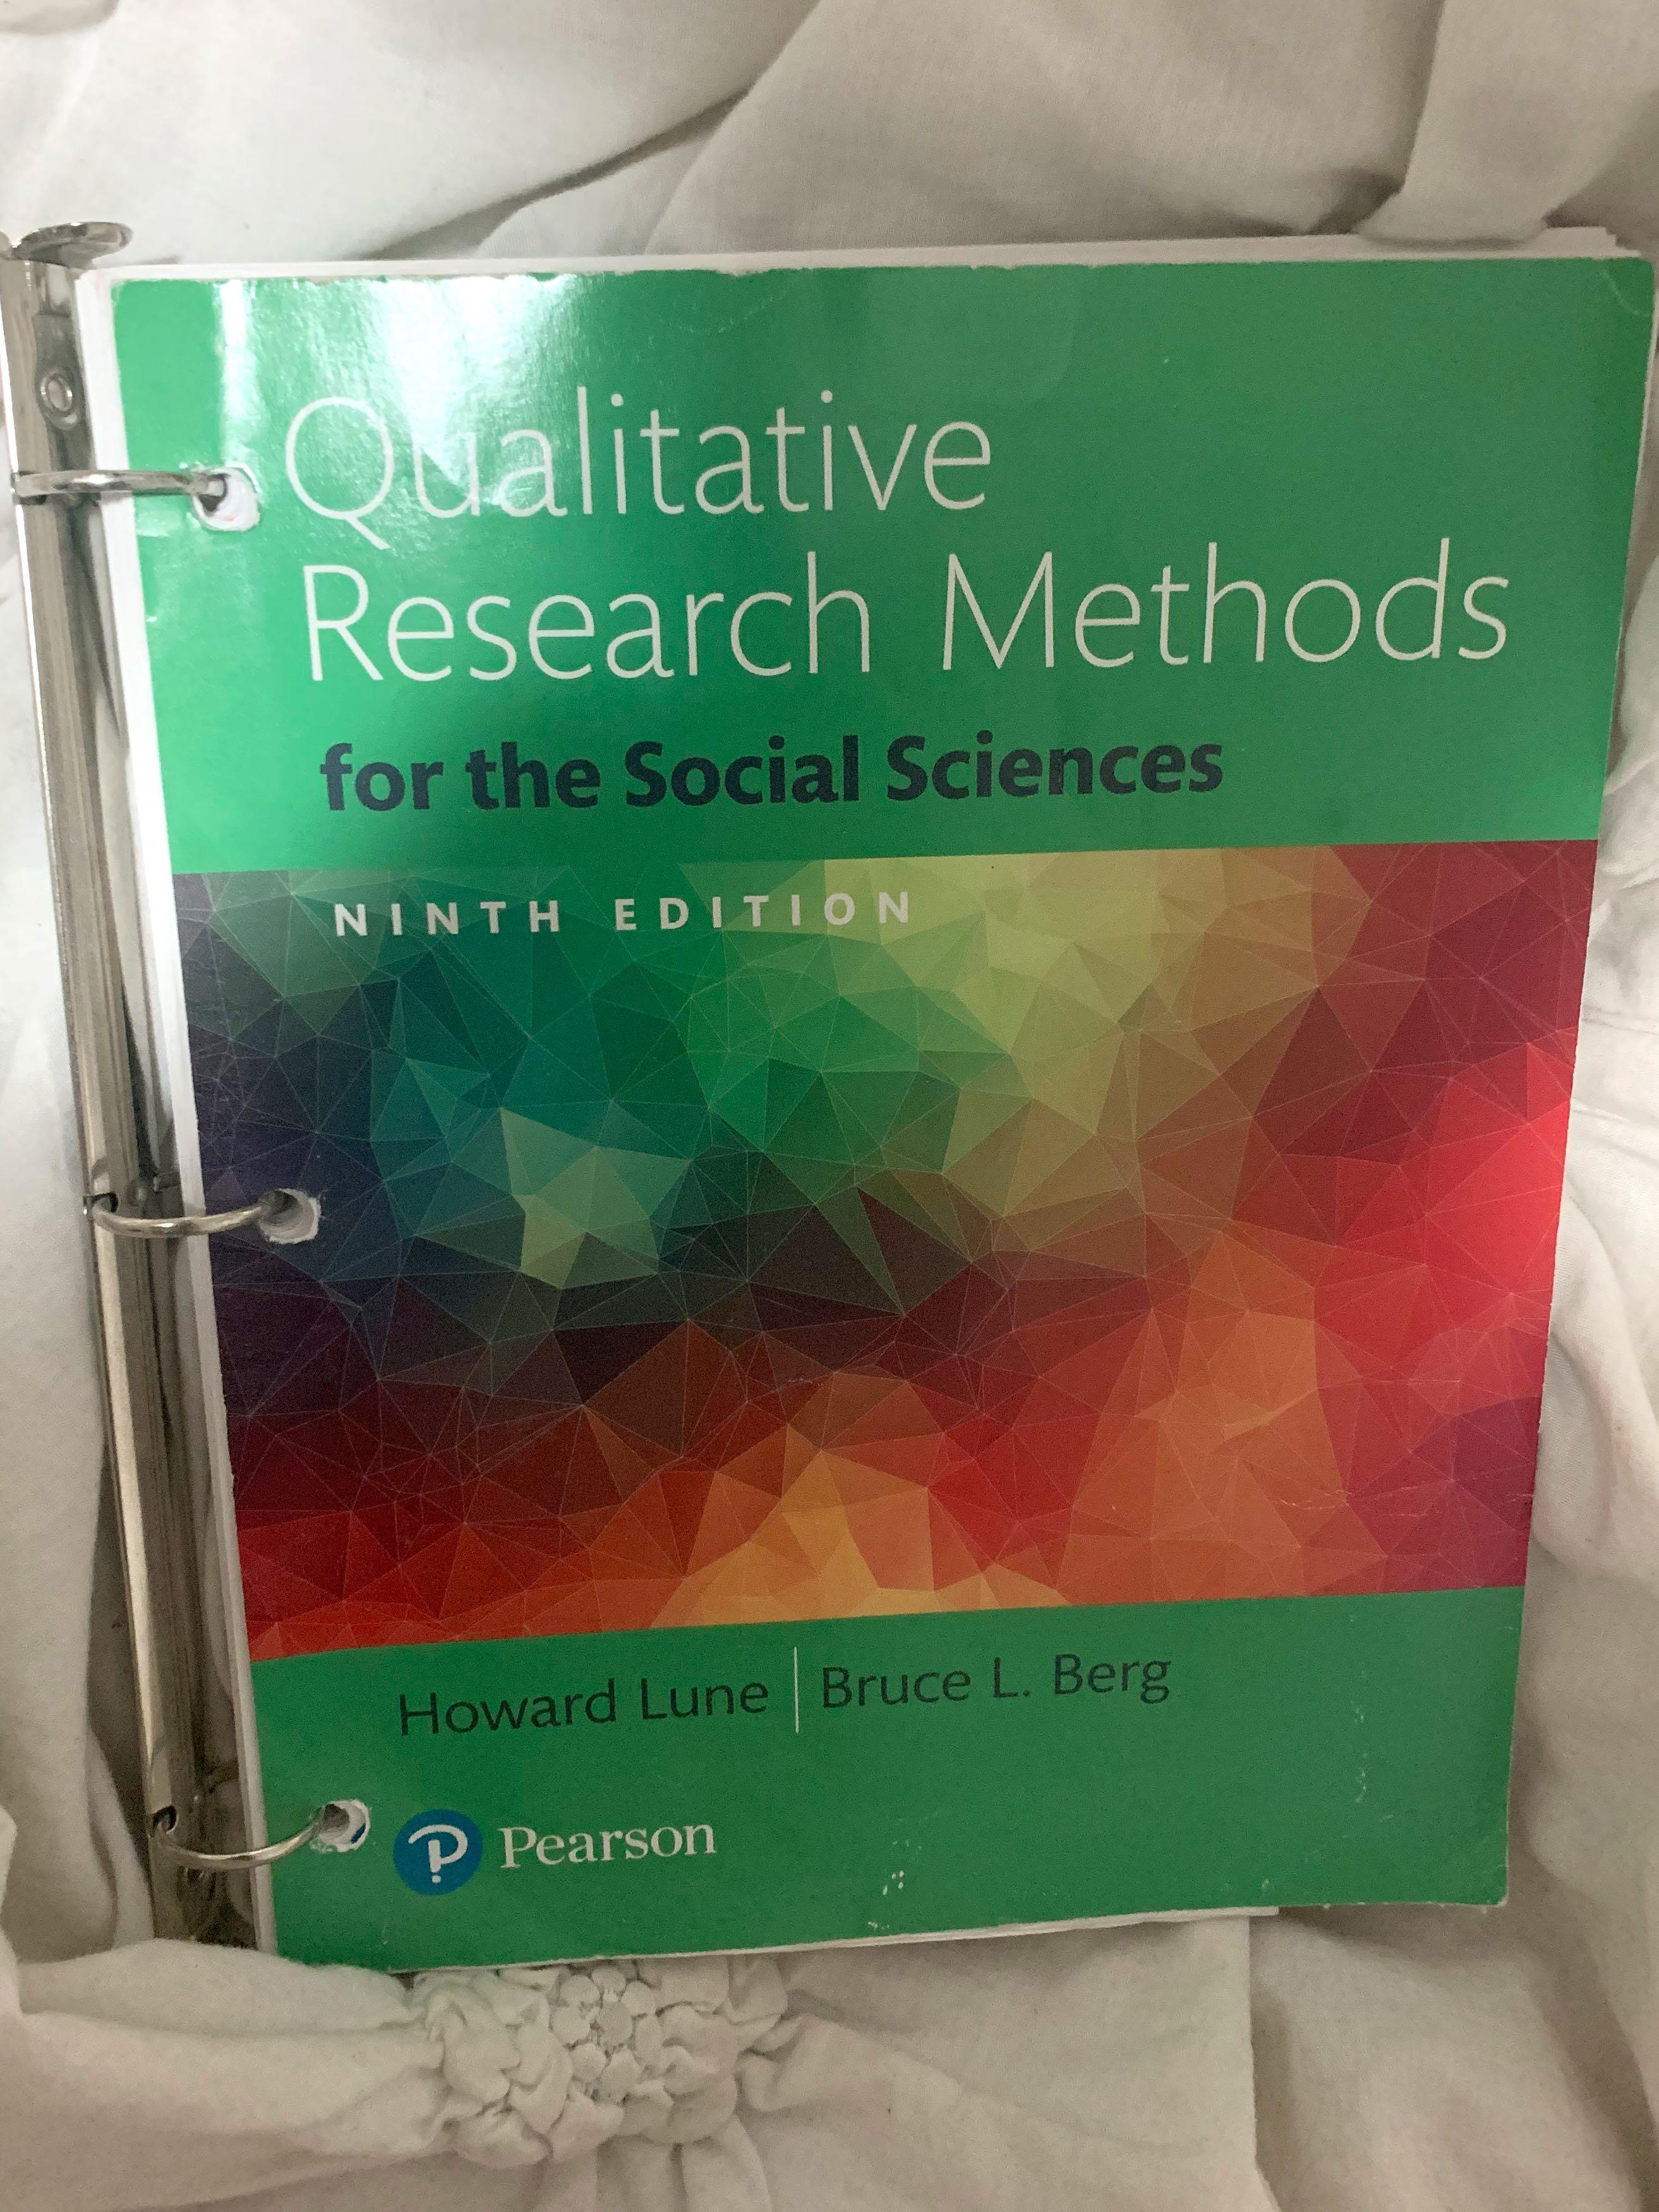 Qualitative research methods for the social science